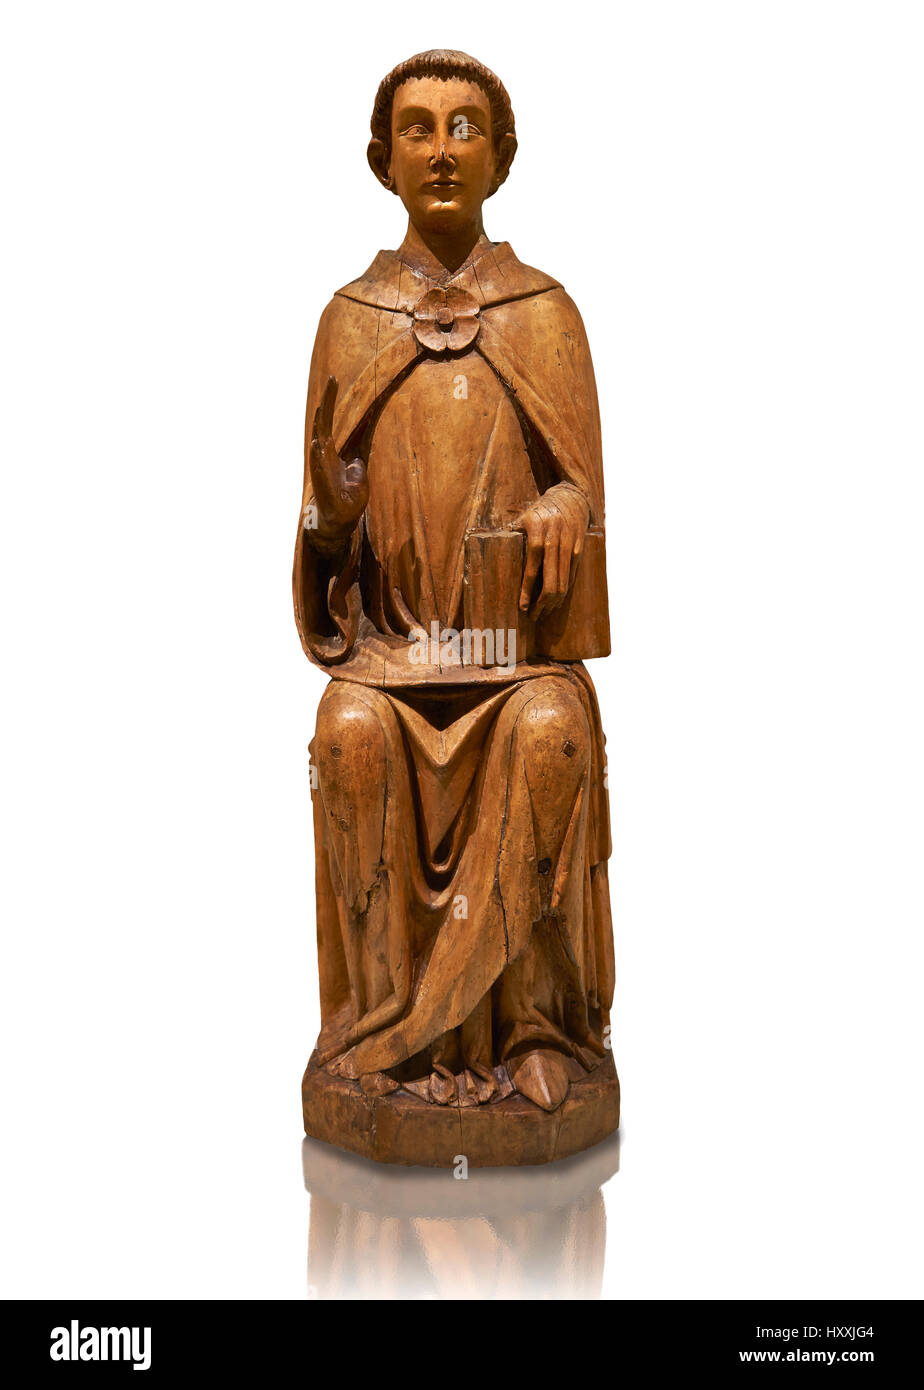 Gothic statue of Saint Peter by Joan Gasco. Stucco reliefs in gold leaf on wood. C.1516. Church of Santa Maria of - Stock Image